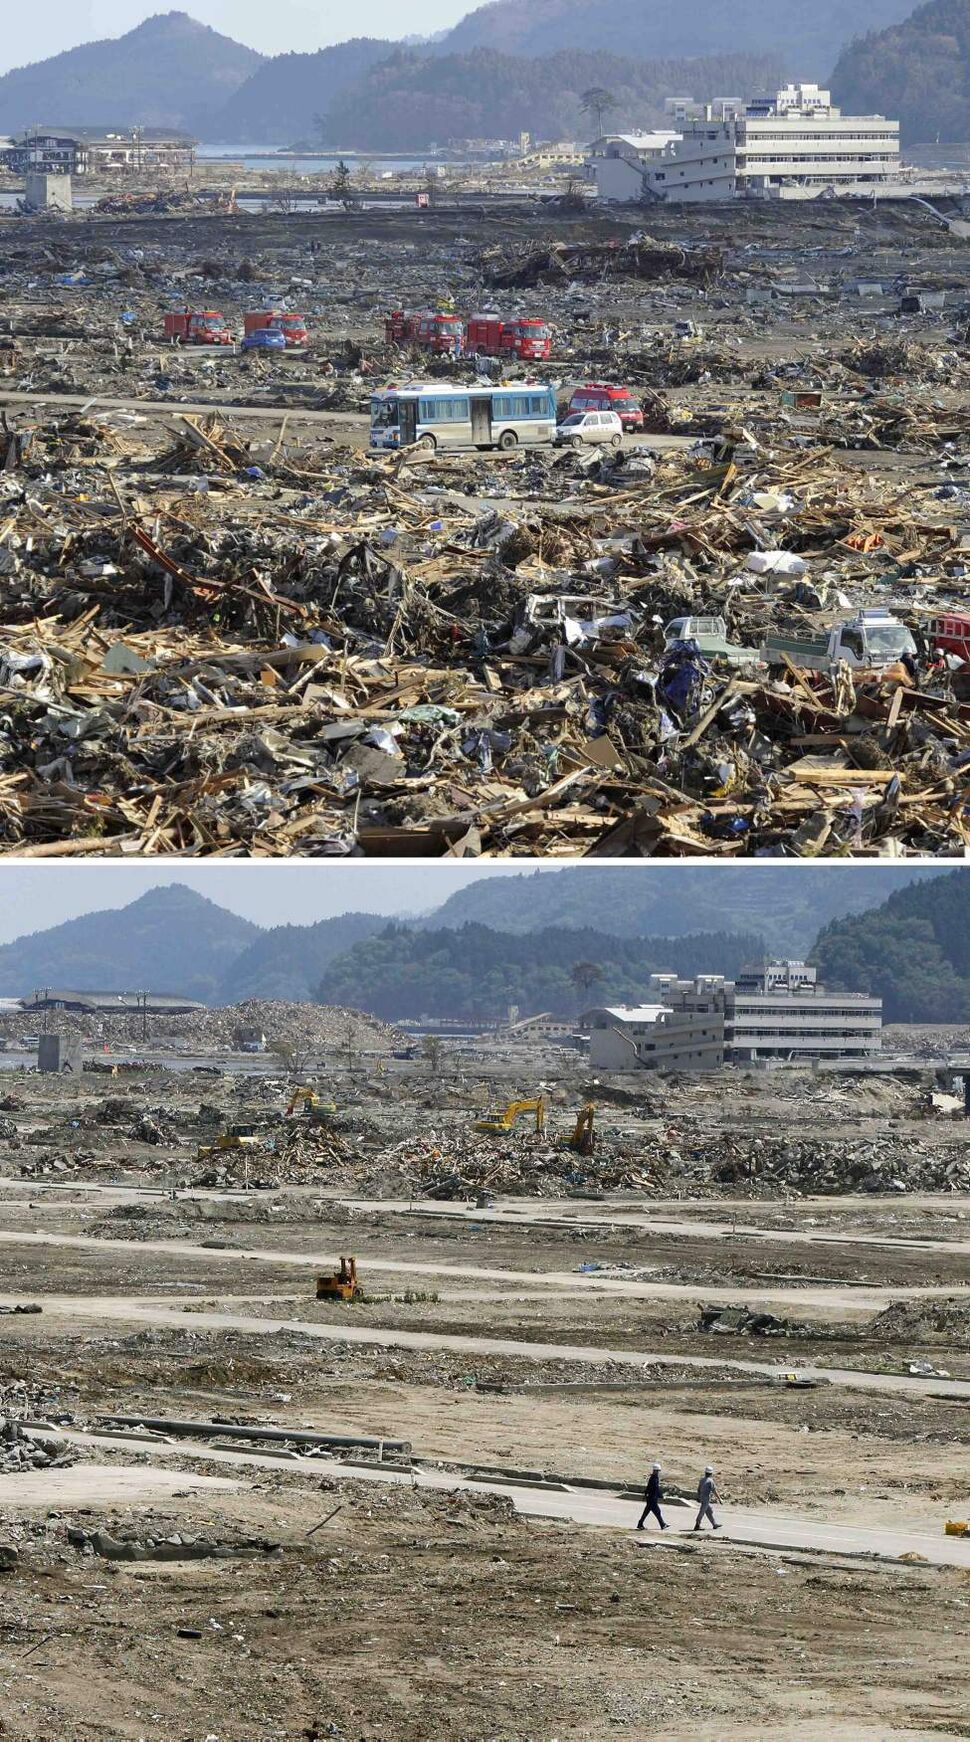 In this combo of two photos, fire engines park among the debris as a search for missing people goes on in Rikuzentakata, Iwate prefecture, northeastern Japan, on March 18, 2011, days after the devastating earthquake and tsunami hit the area, top, and the same area, bottom, with the debris almost cleared as photographed on June 6, 2011. Japan marks three months since the March 11 earthquake and tsunami that struck the nation's eastern coast on Saturday, June 11, 2011. (AP Photo/Kyodo News)